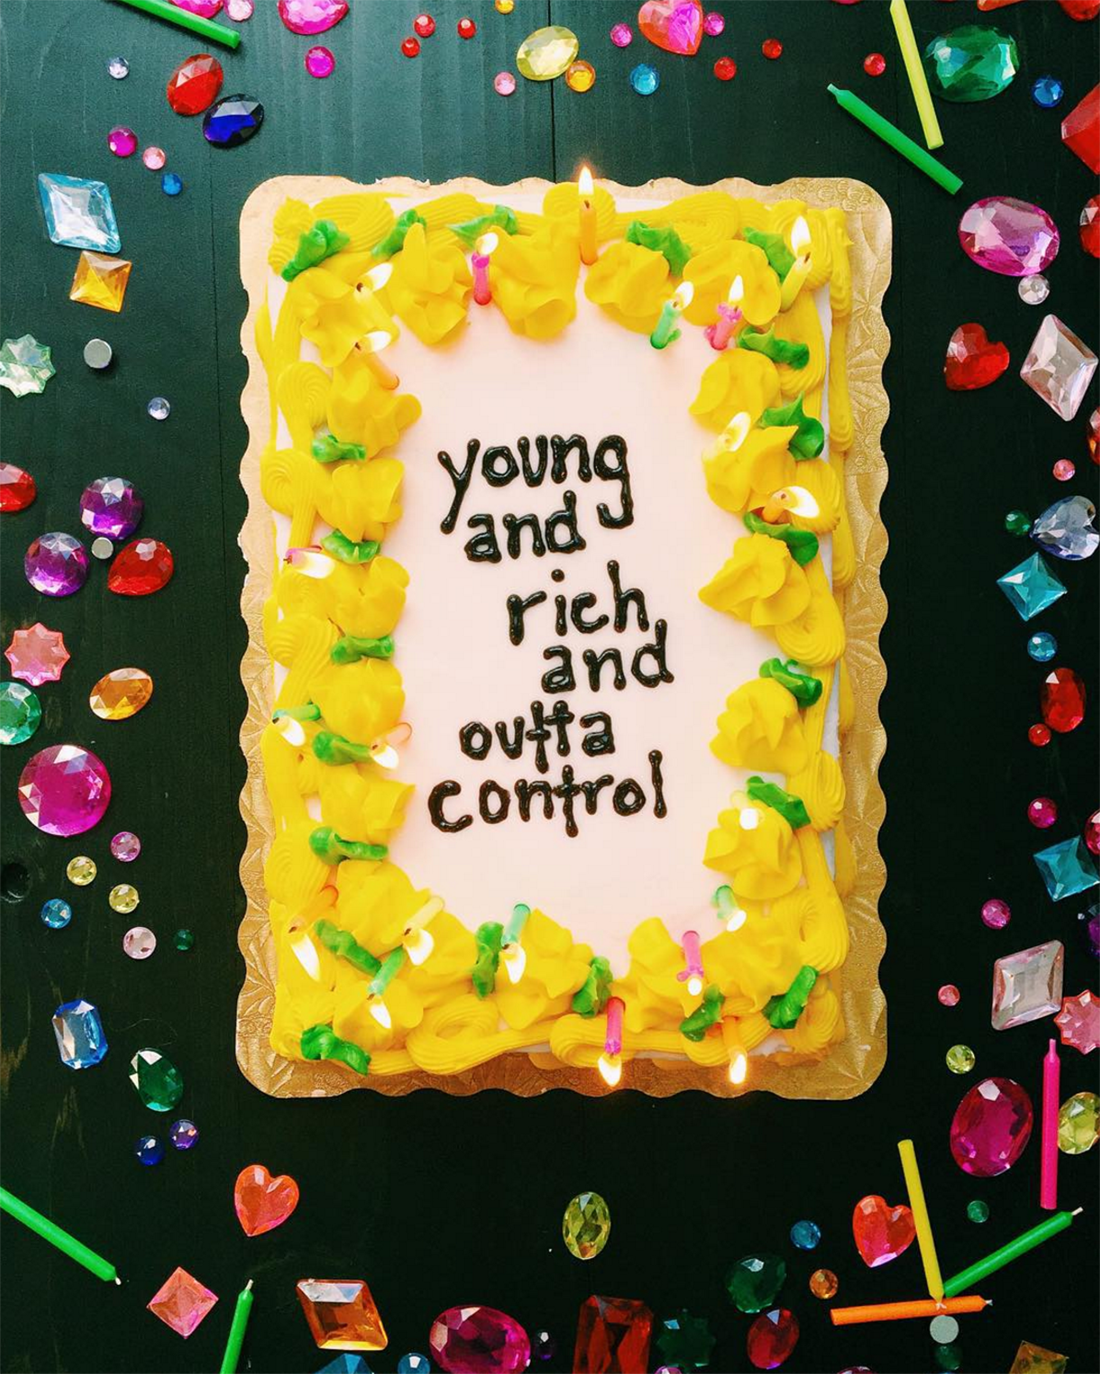 Drake Lyrics On Cake By Joy The Baker